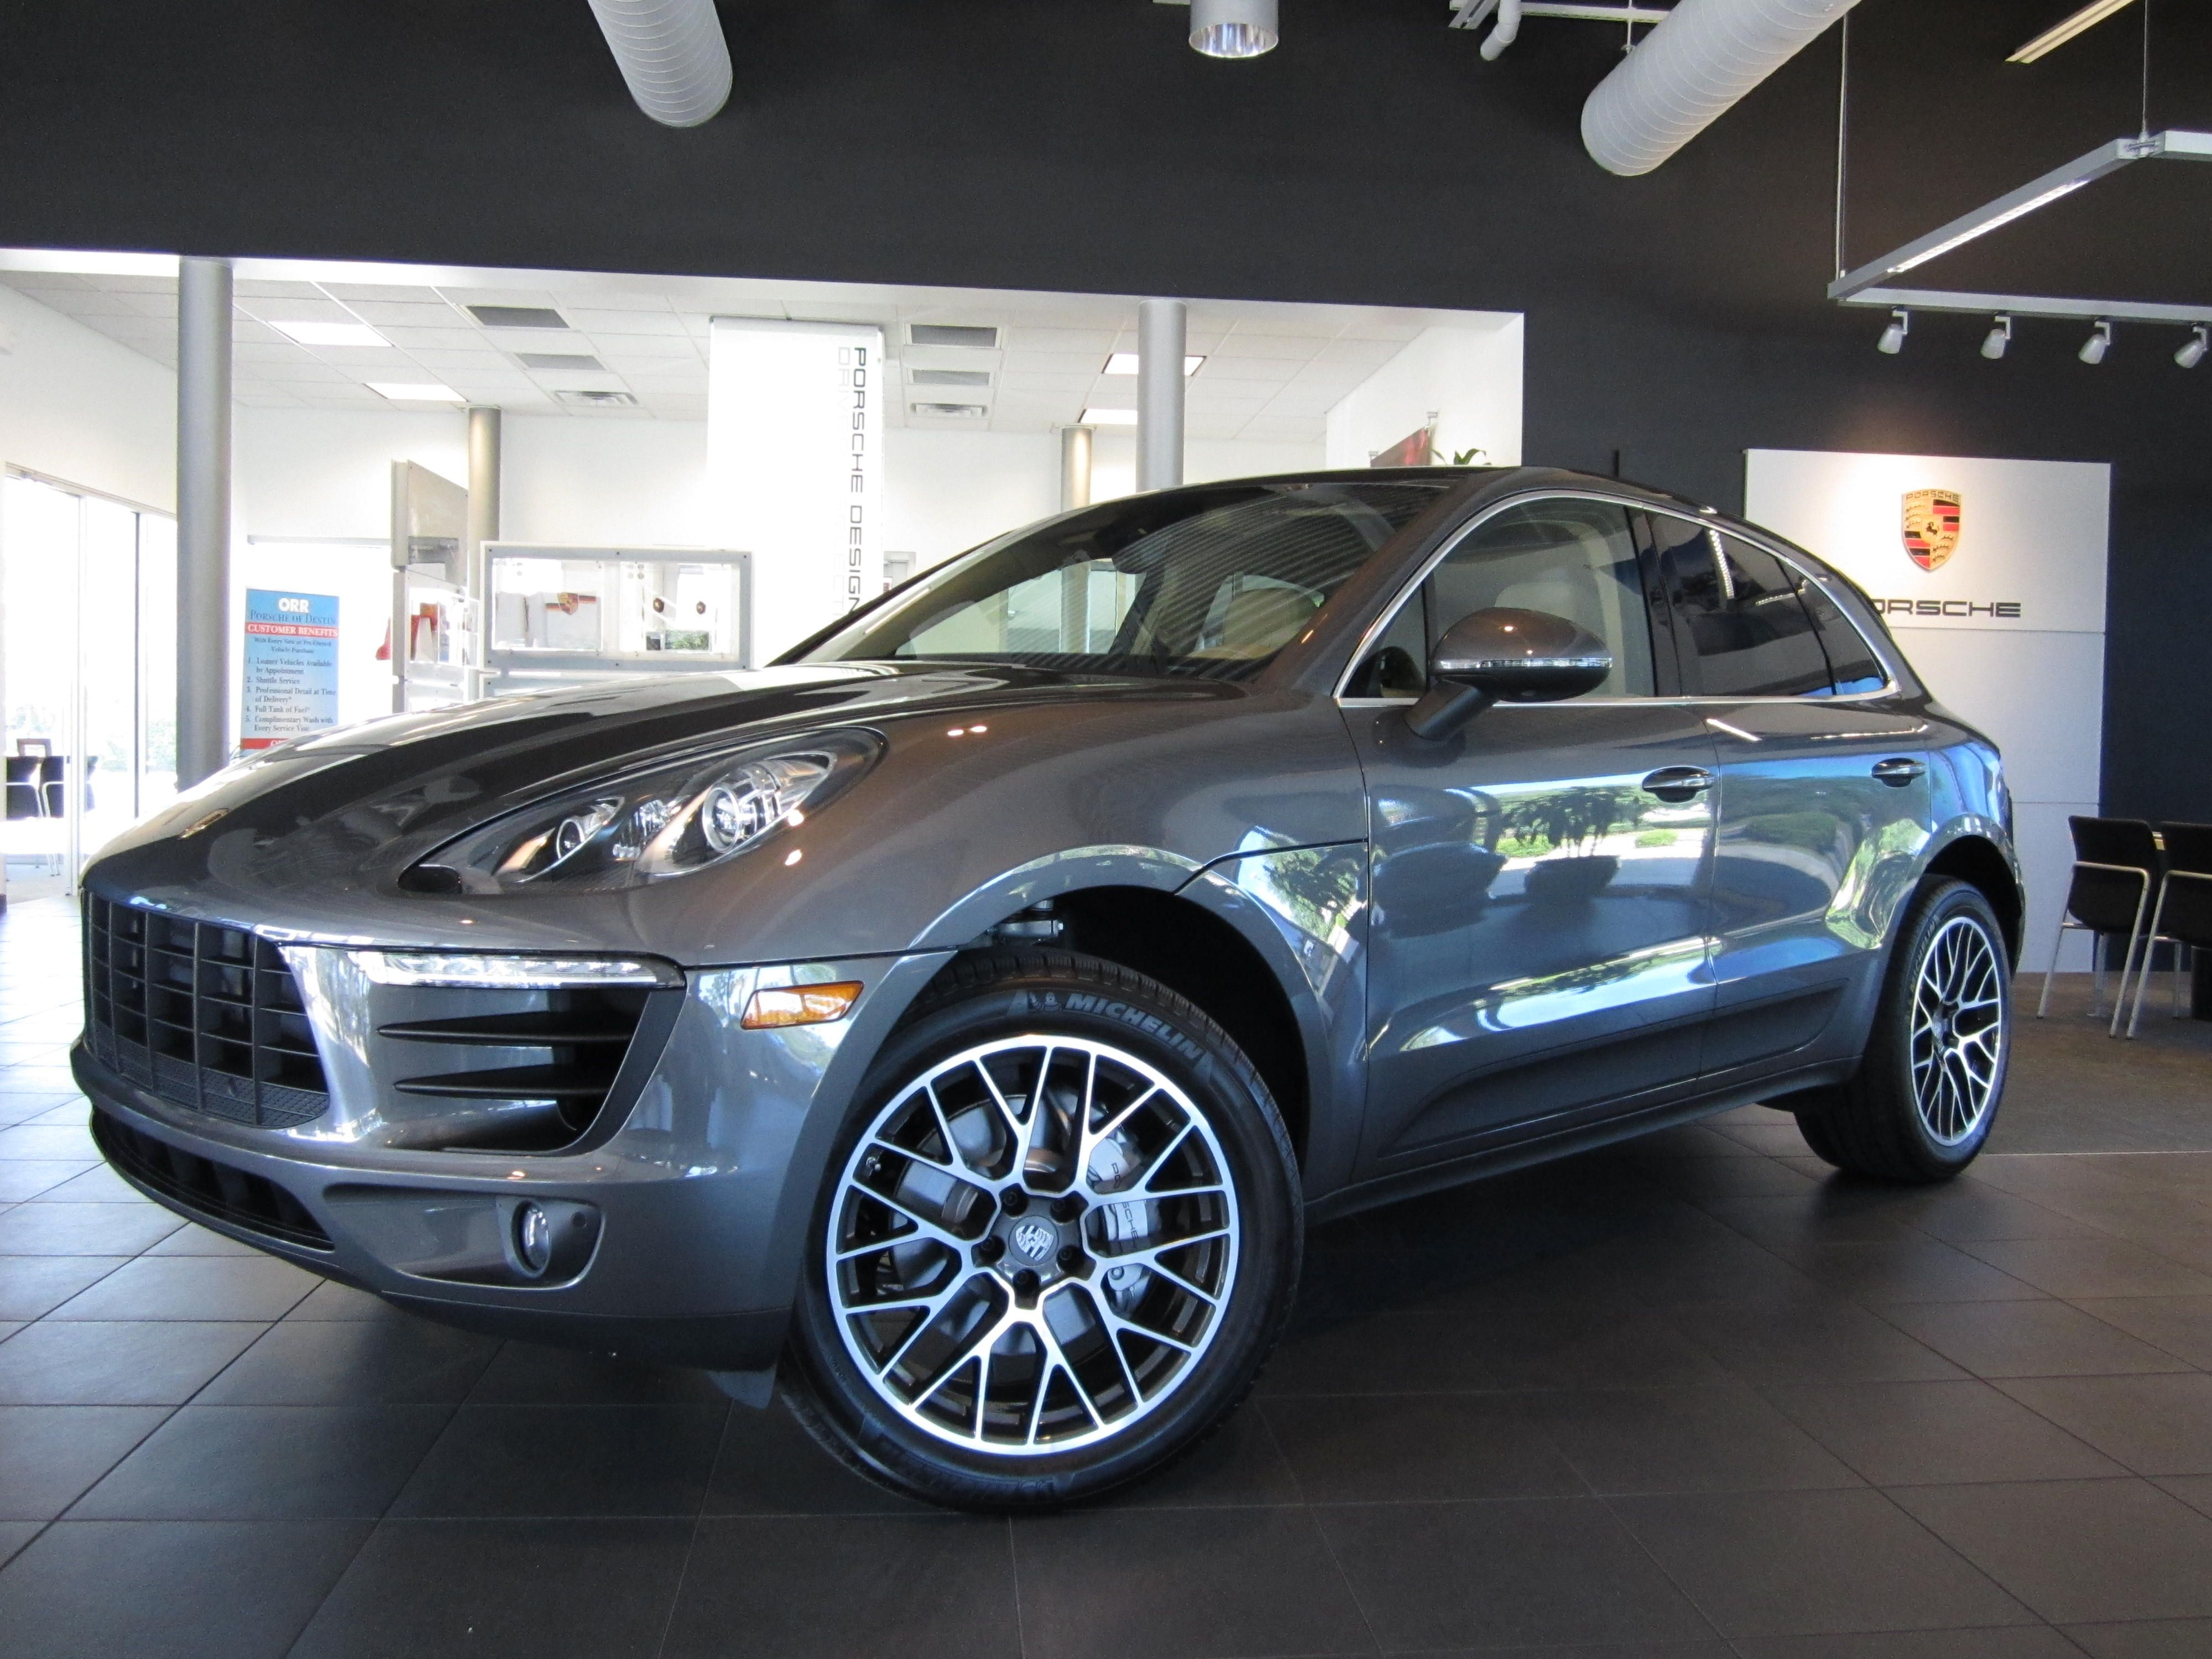 2015 Porsche Macan S Agate Grey Metallic On Luxor Beige The New